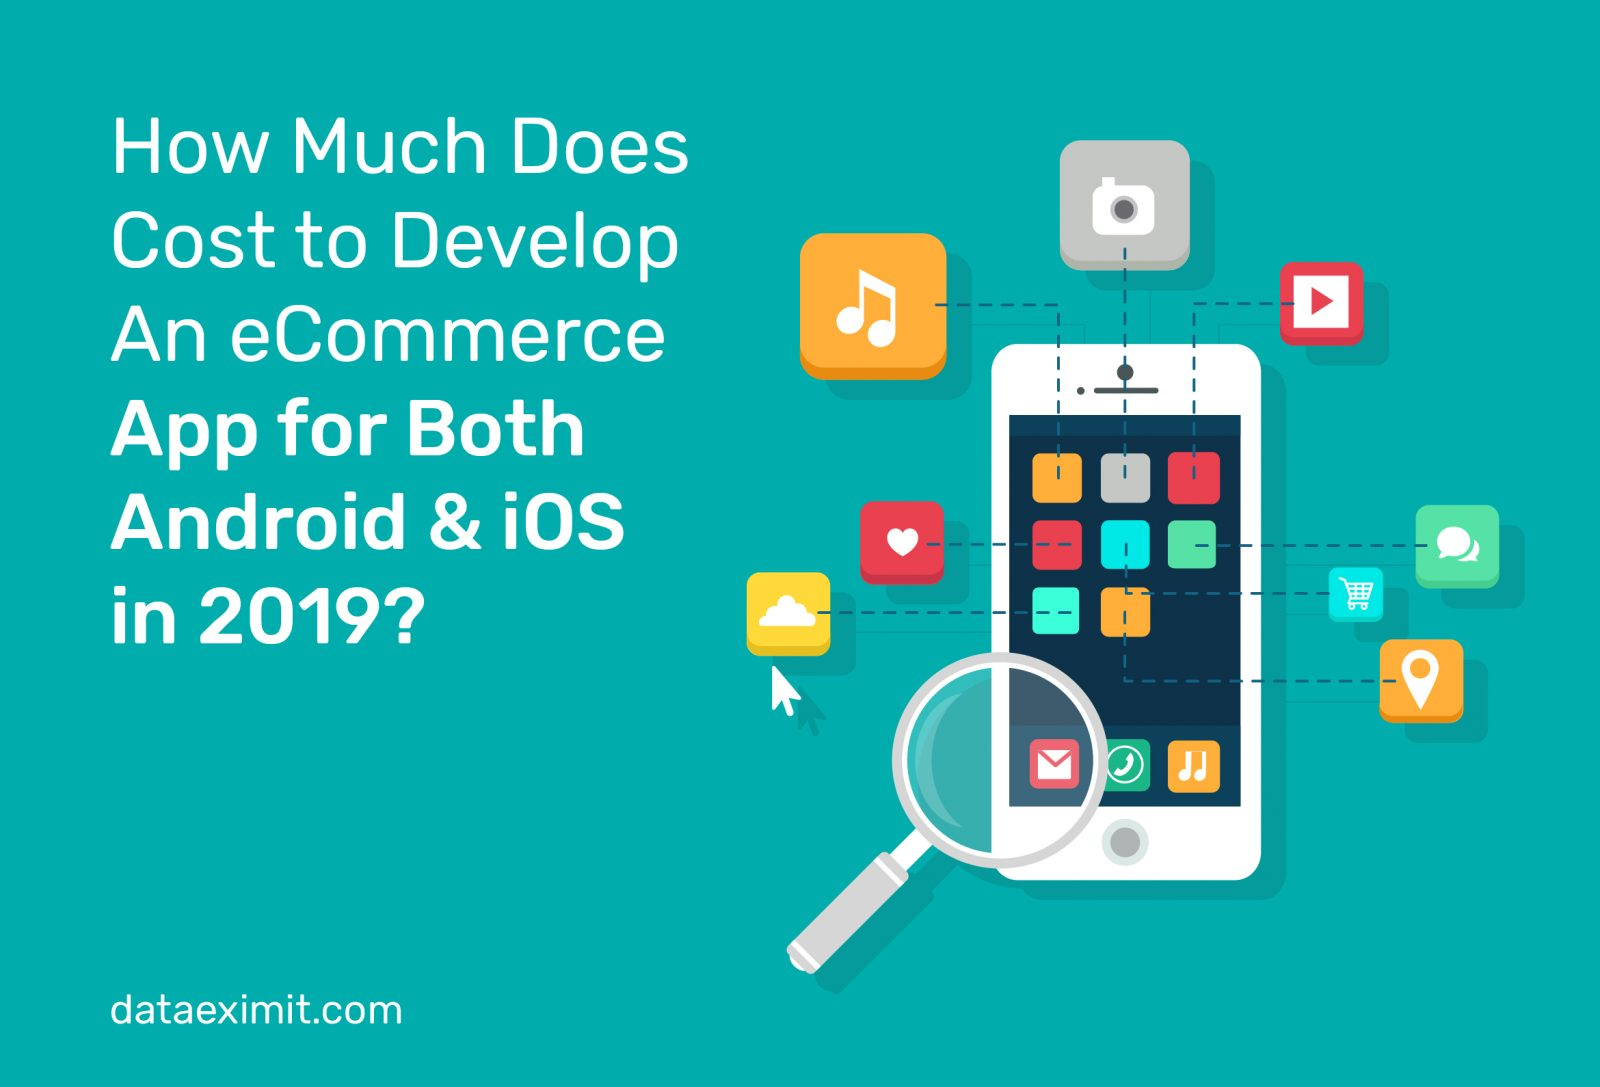 How Much Does Cost to Develop An eCommerce App for Both Android & iOS?